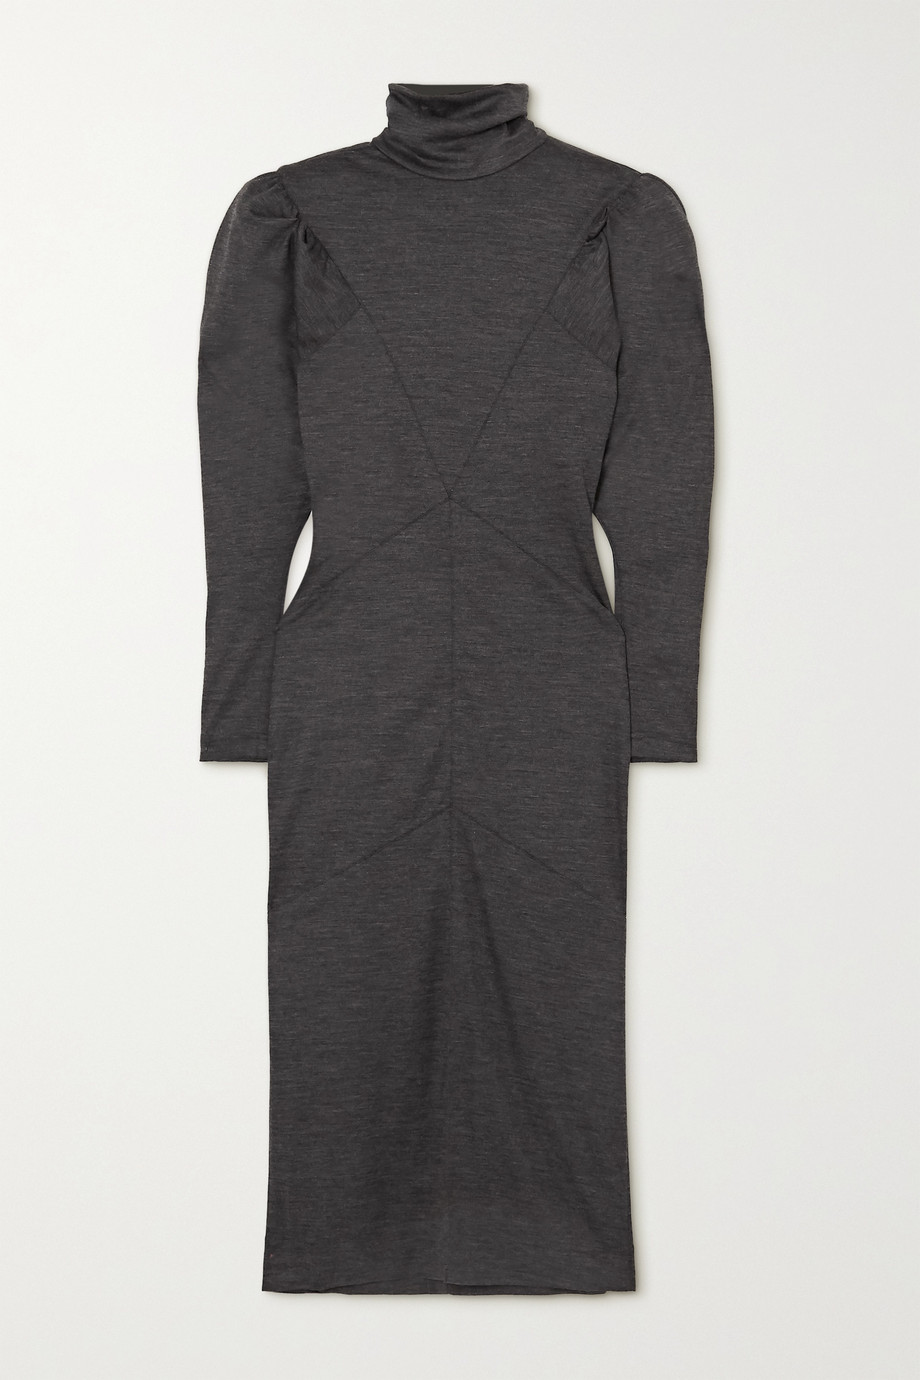 이자벨 마랑 Isabel Marant Genia paneled melange wool turtleneck midi dress,Anthracite